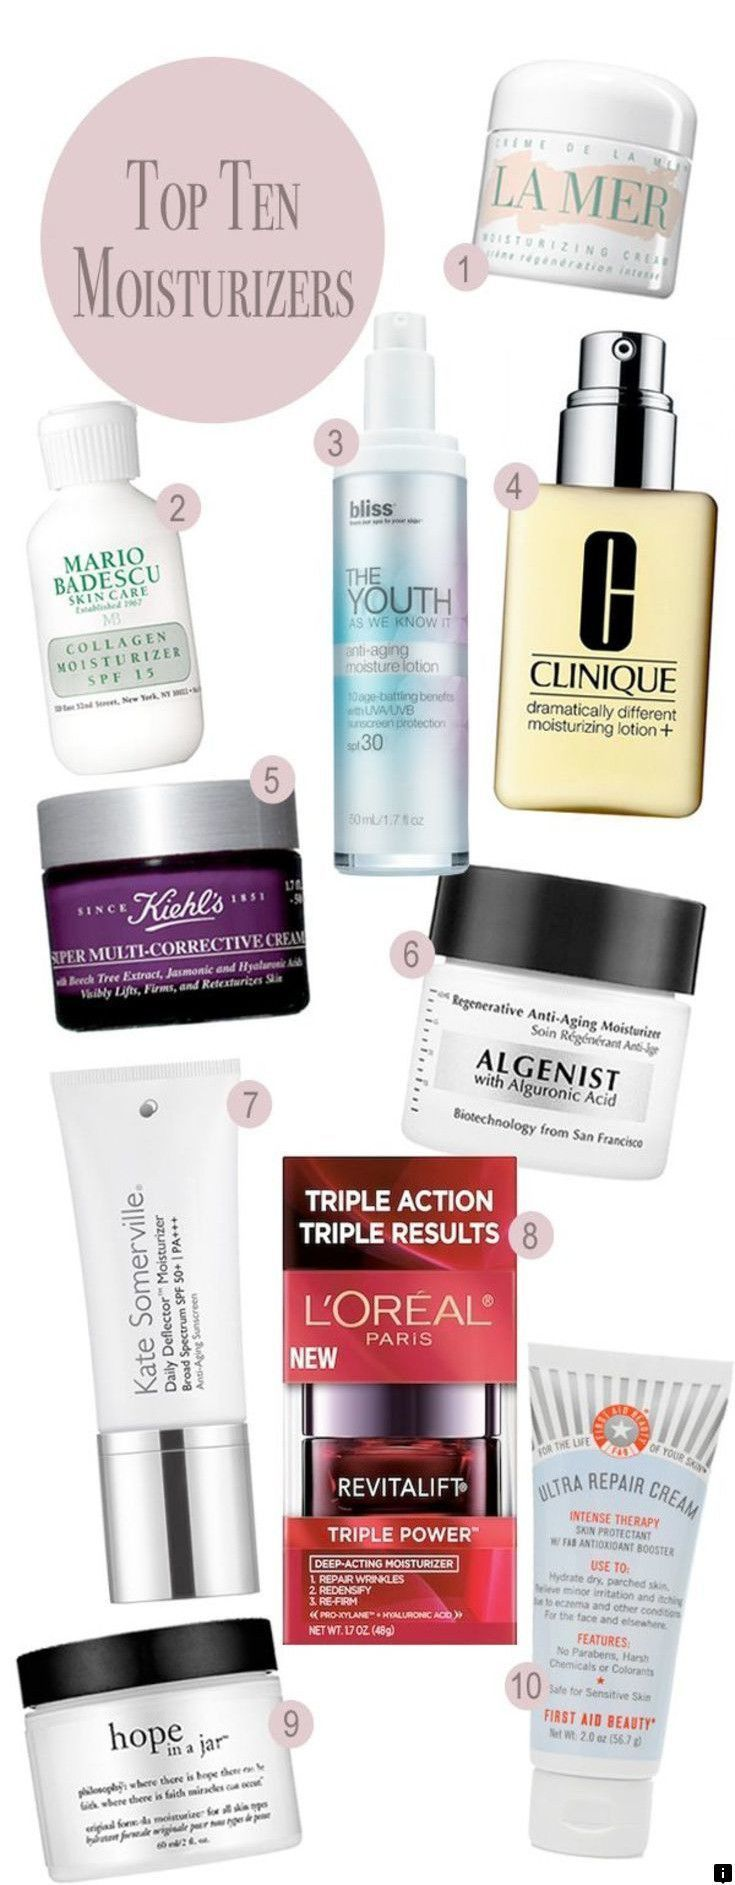 Beauty Top 10 Moisturizers Makeup Skin Care Top Skin Care Products